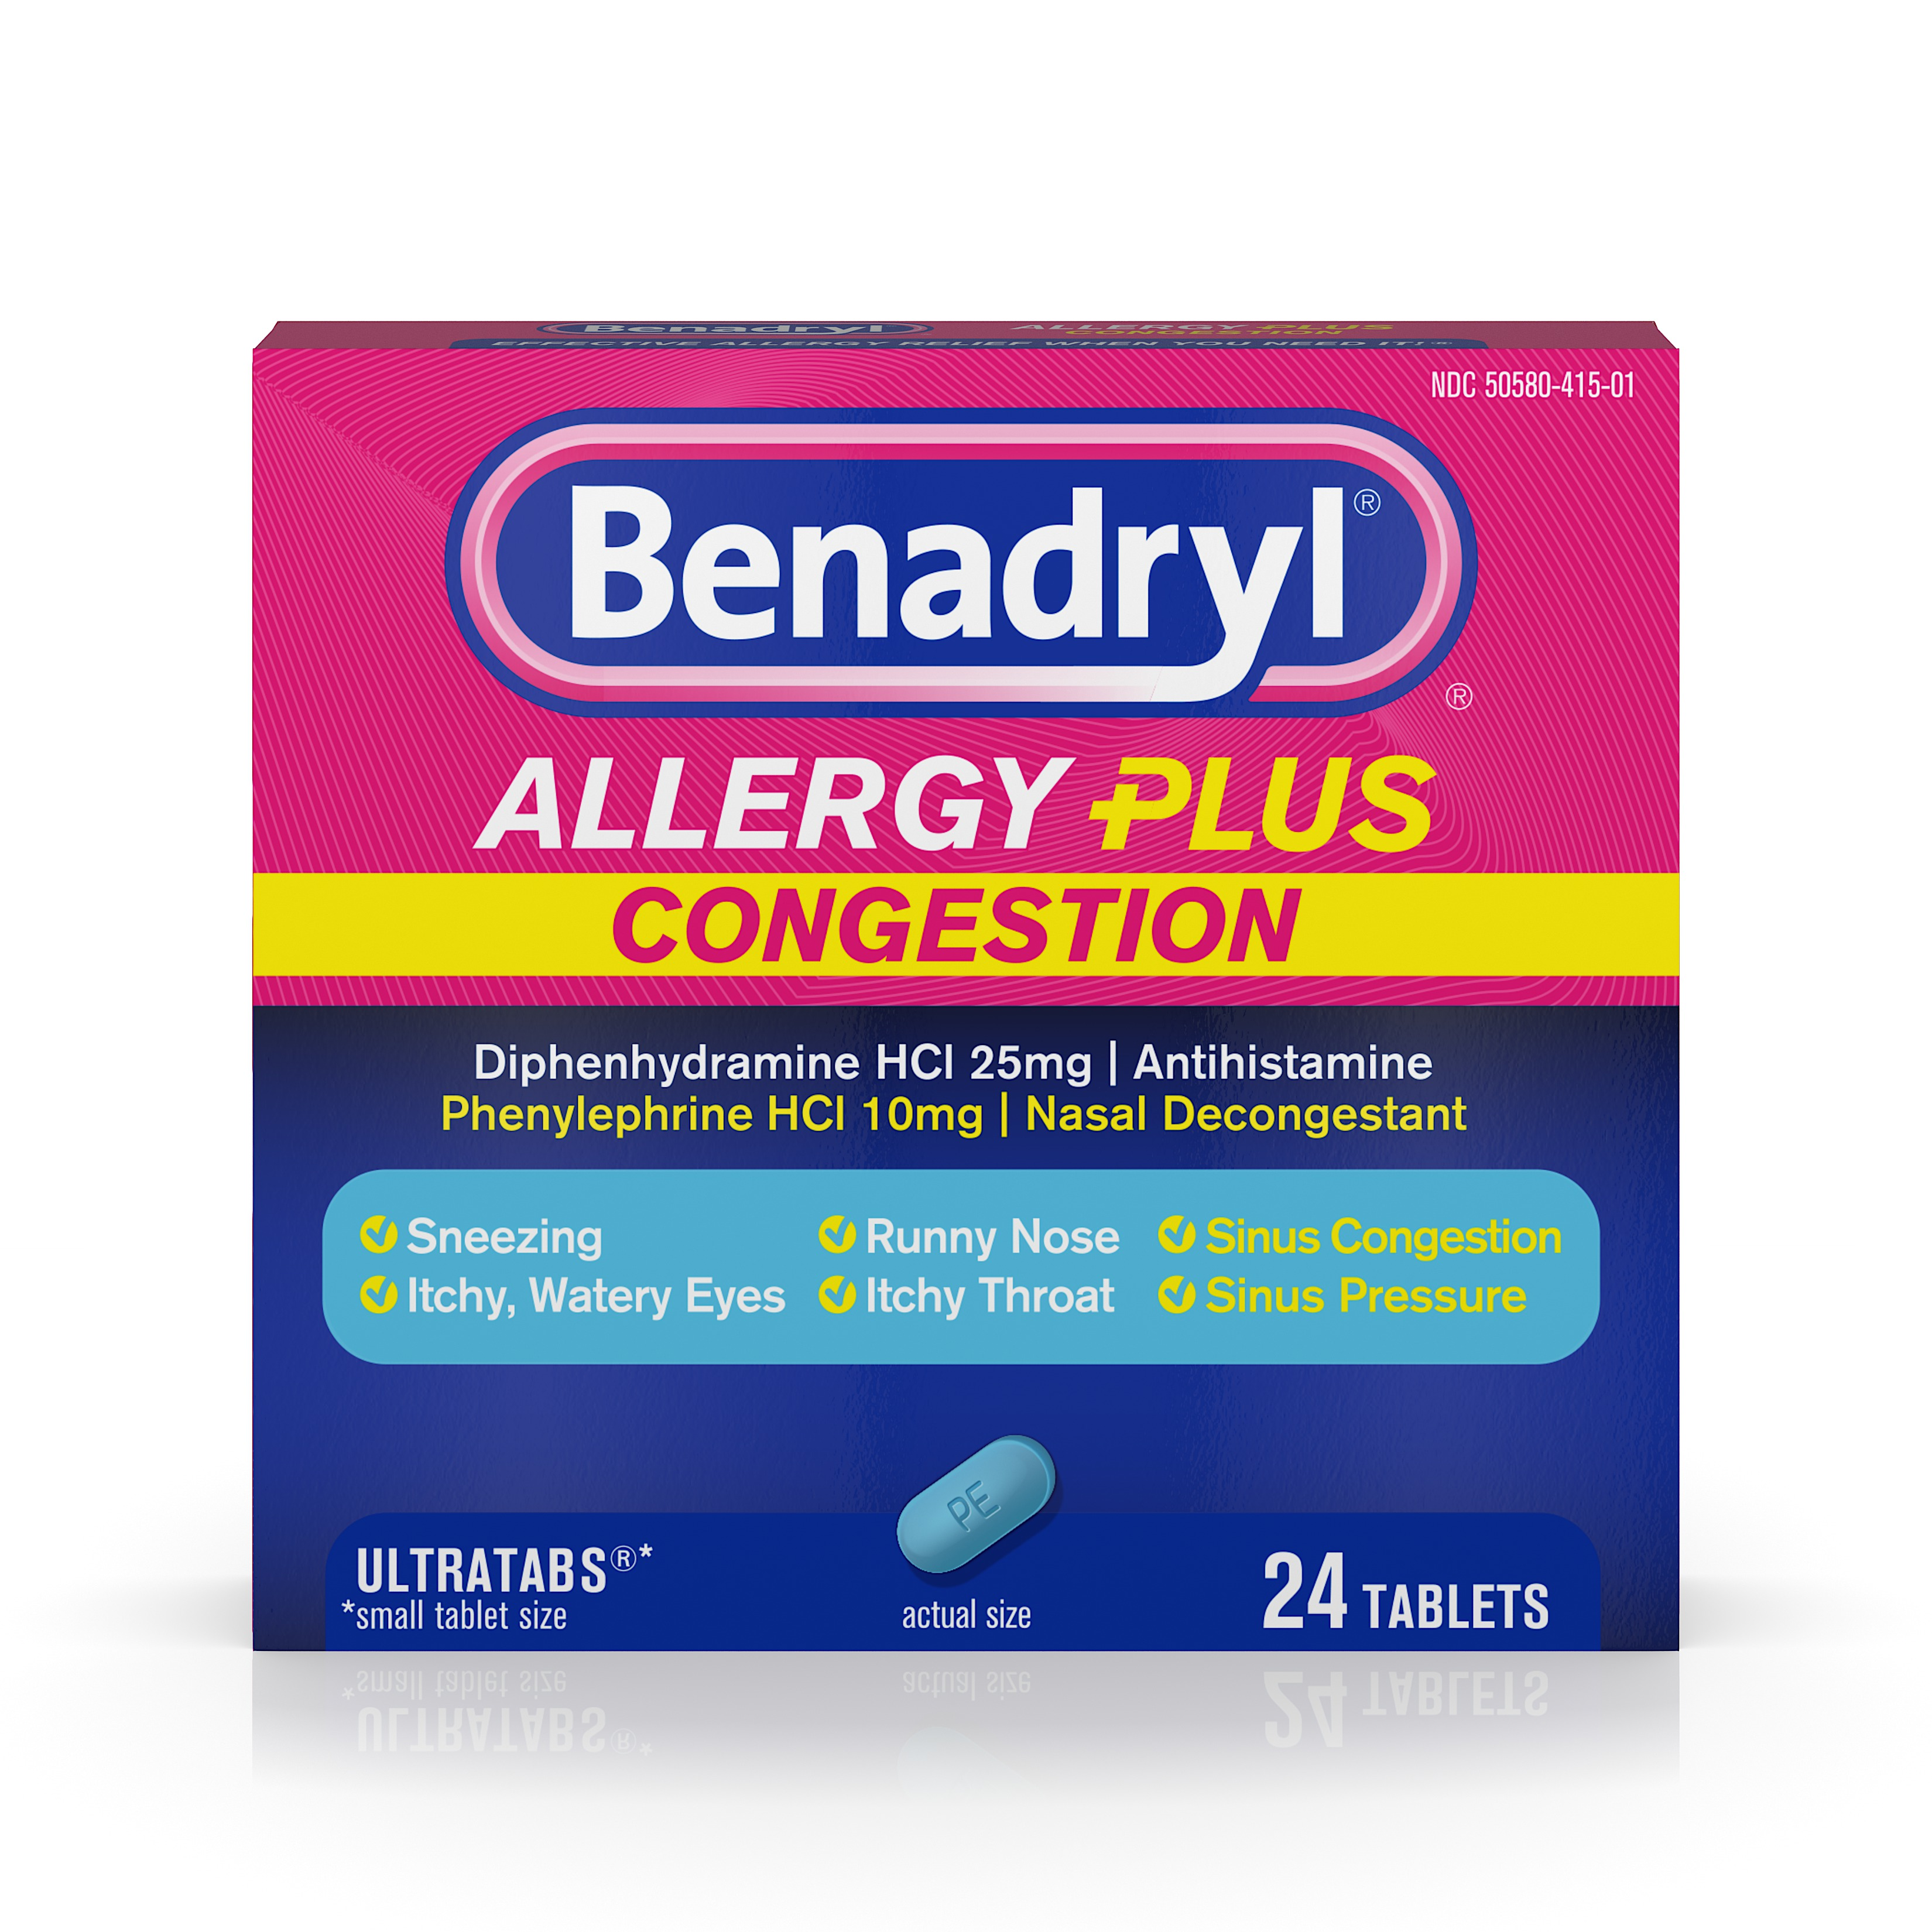 Benadryl Allergy Plus Congestion Ultratabs, Nasal Congestion Relief, Allergy Tablets, 24 Ct